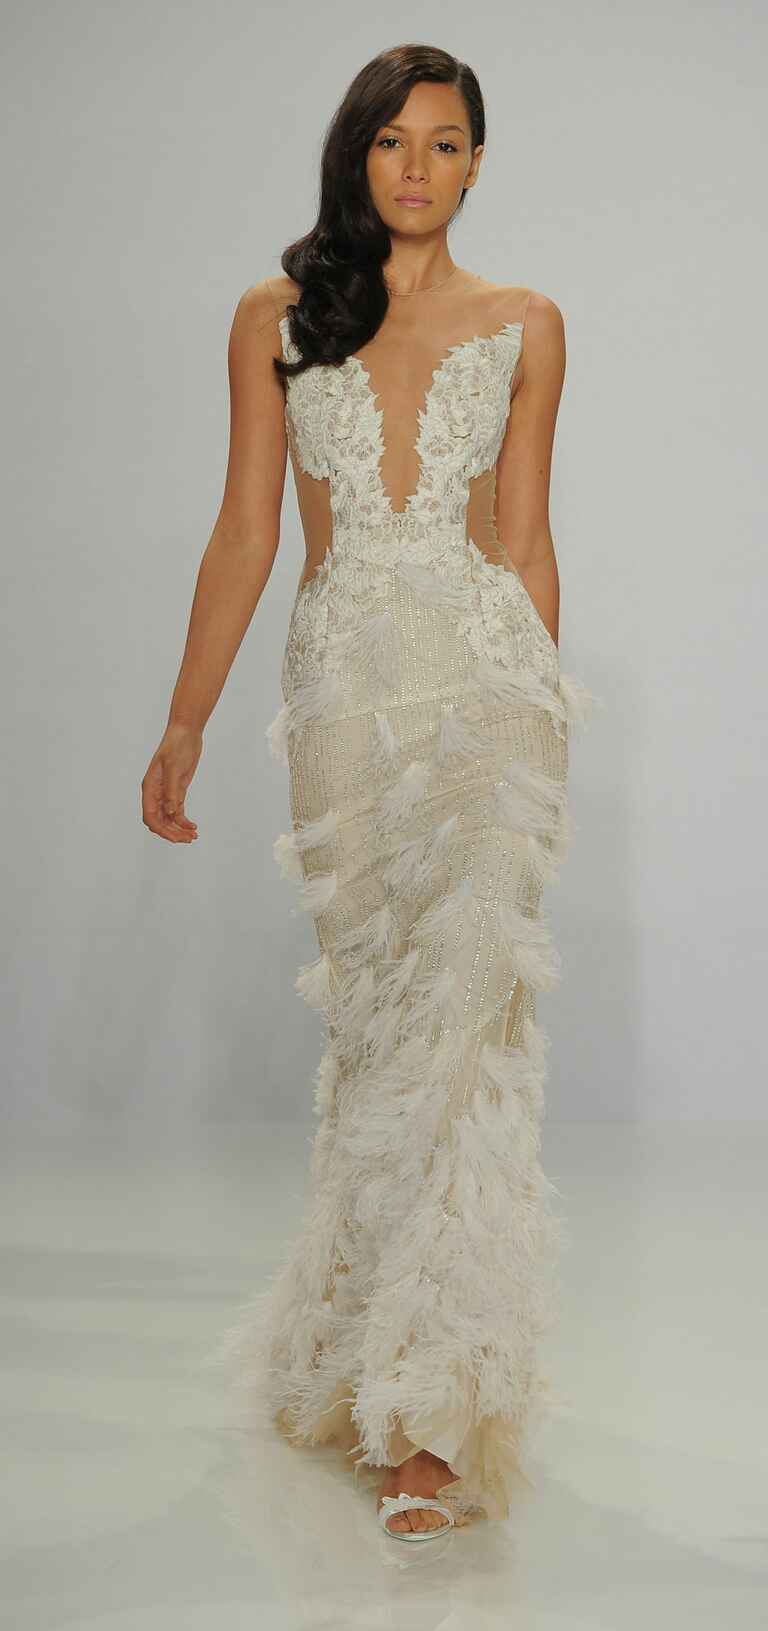 Christian Siriano Spring 2017 feather illusion wedding dress